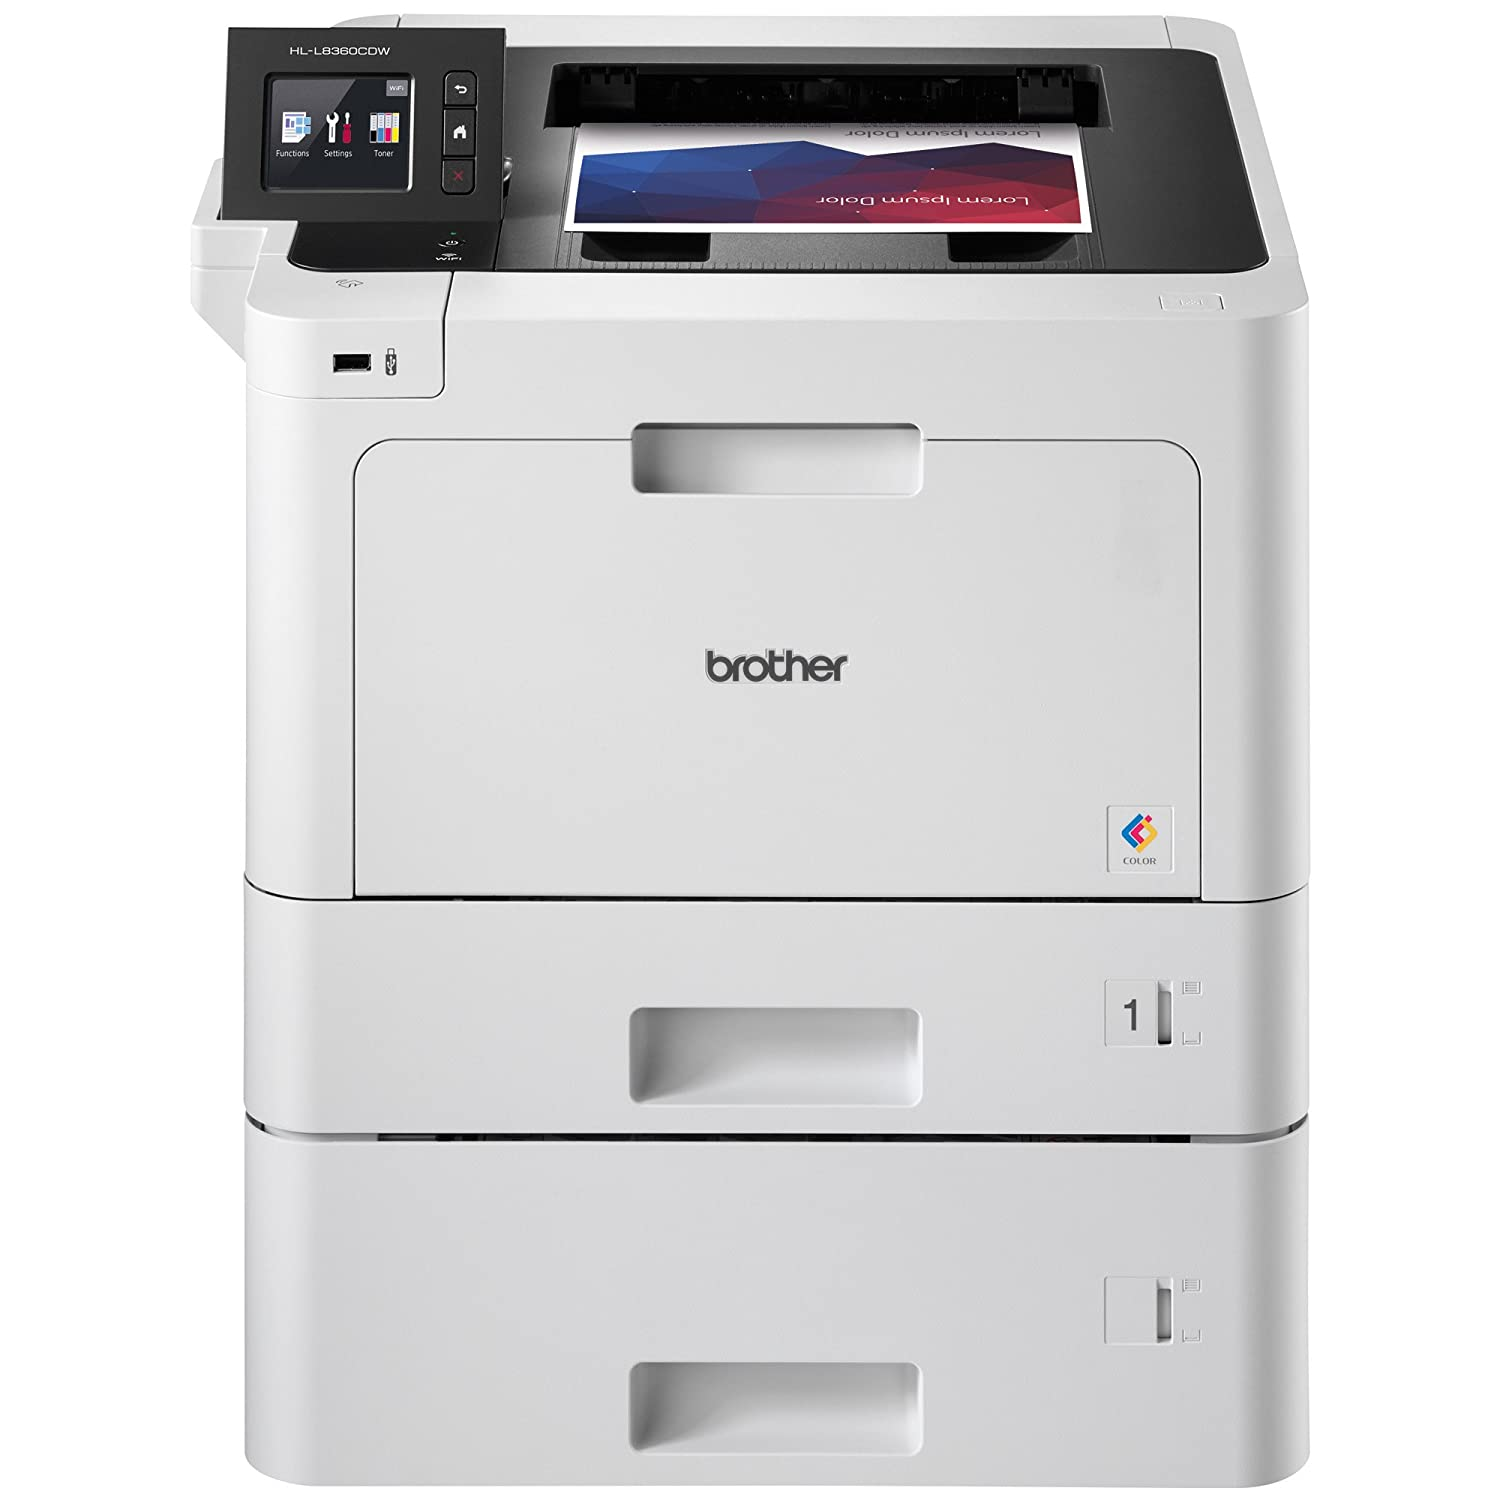 Brother Business Color Laser Printer, HL-L8360CDWT, Wireless Networking, Automatic Duplex Printing, Mobile Printing, Cloud Printing, Amazon Dash Replenishment Enabled